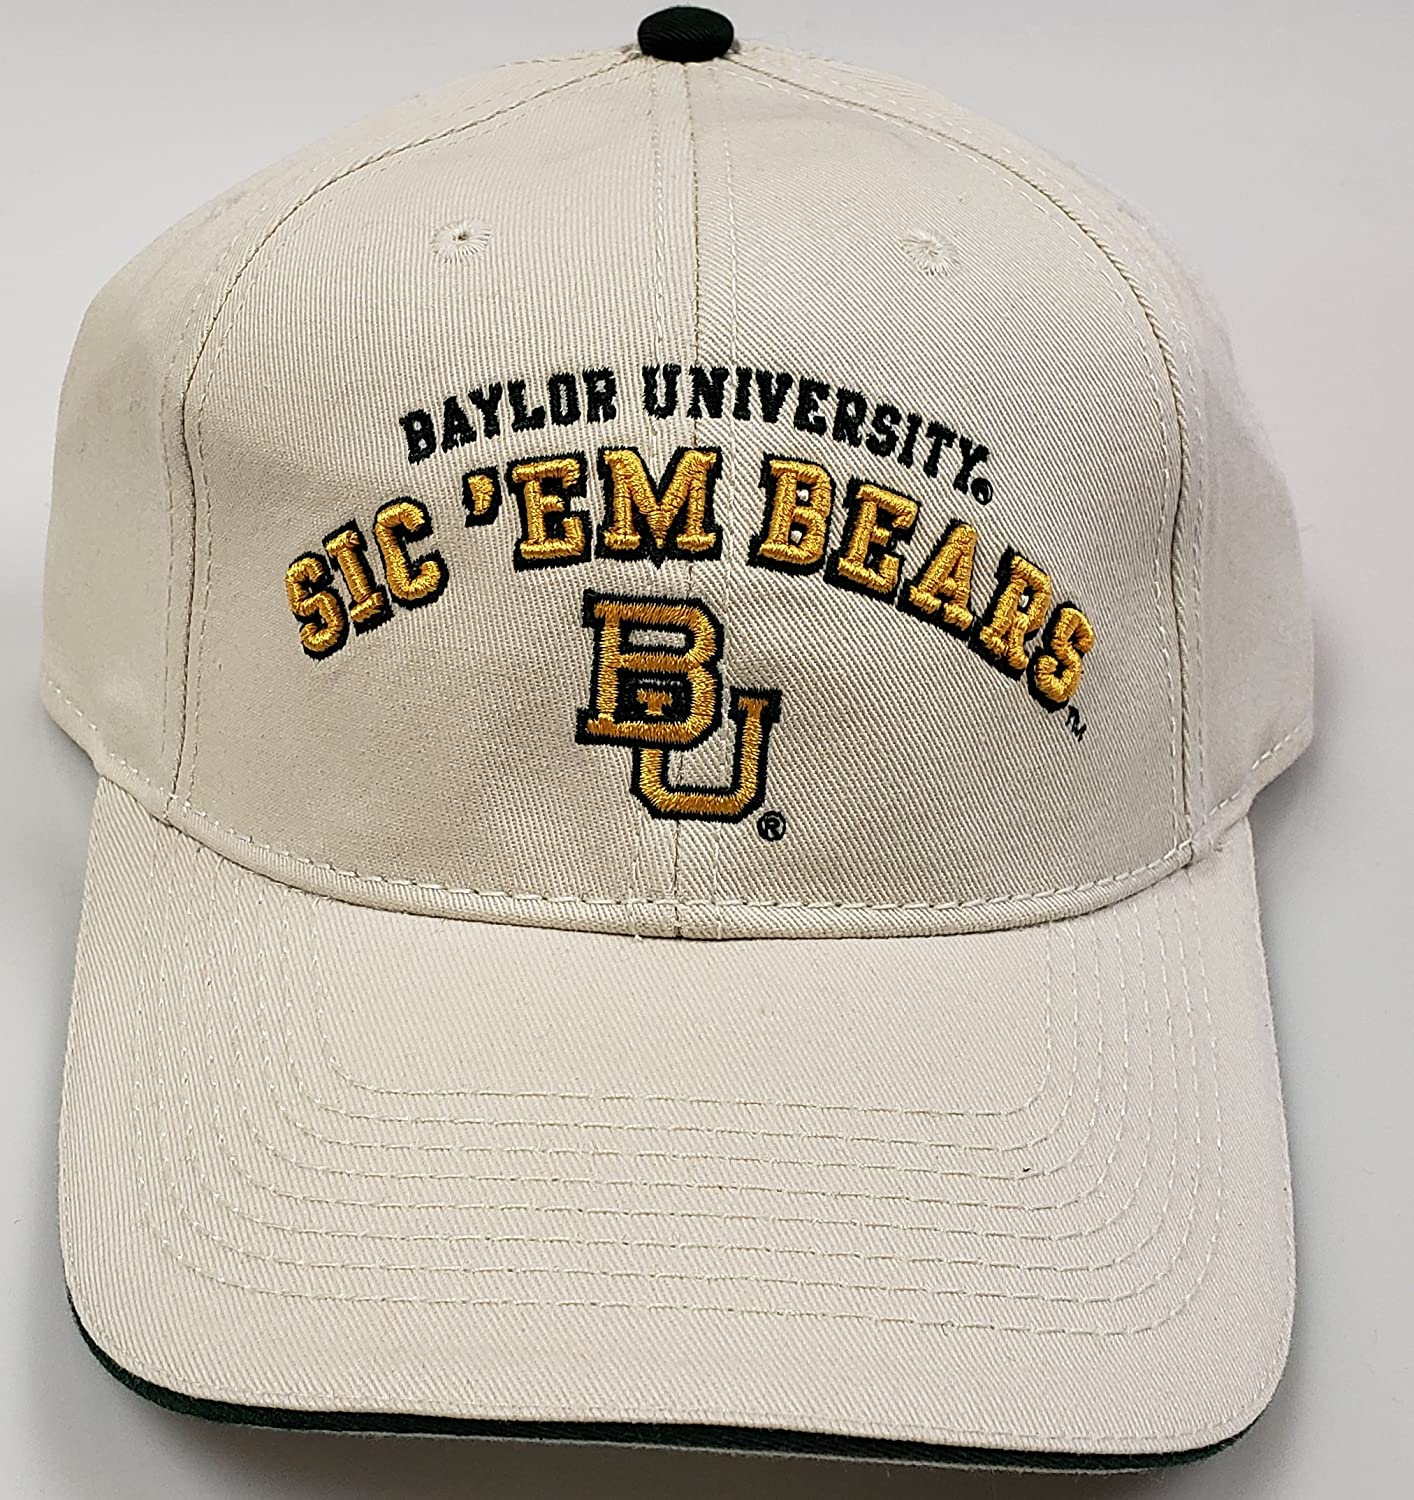 8b731c6c90b5a ... 50% off amazon ncaa new baylor bears university adjustable buckle back cap  sports outdoors 258f5